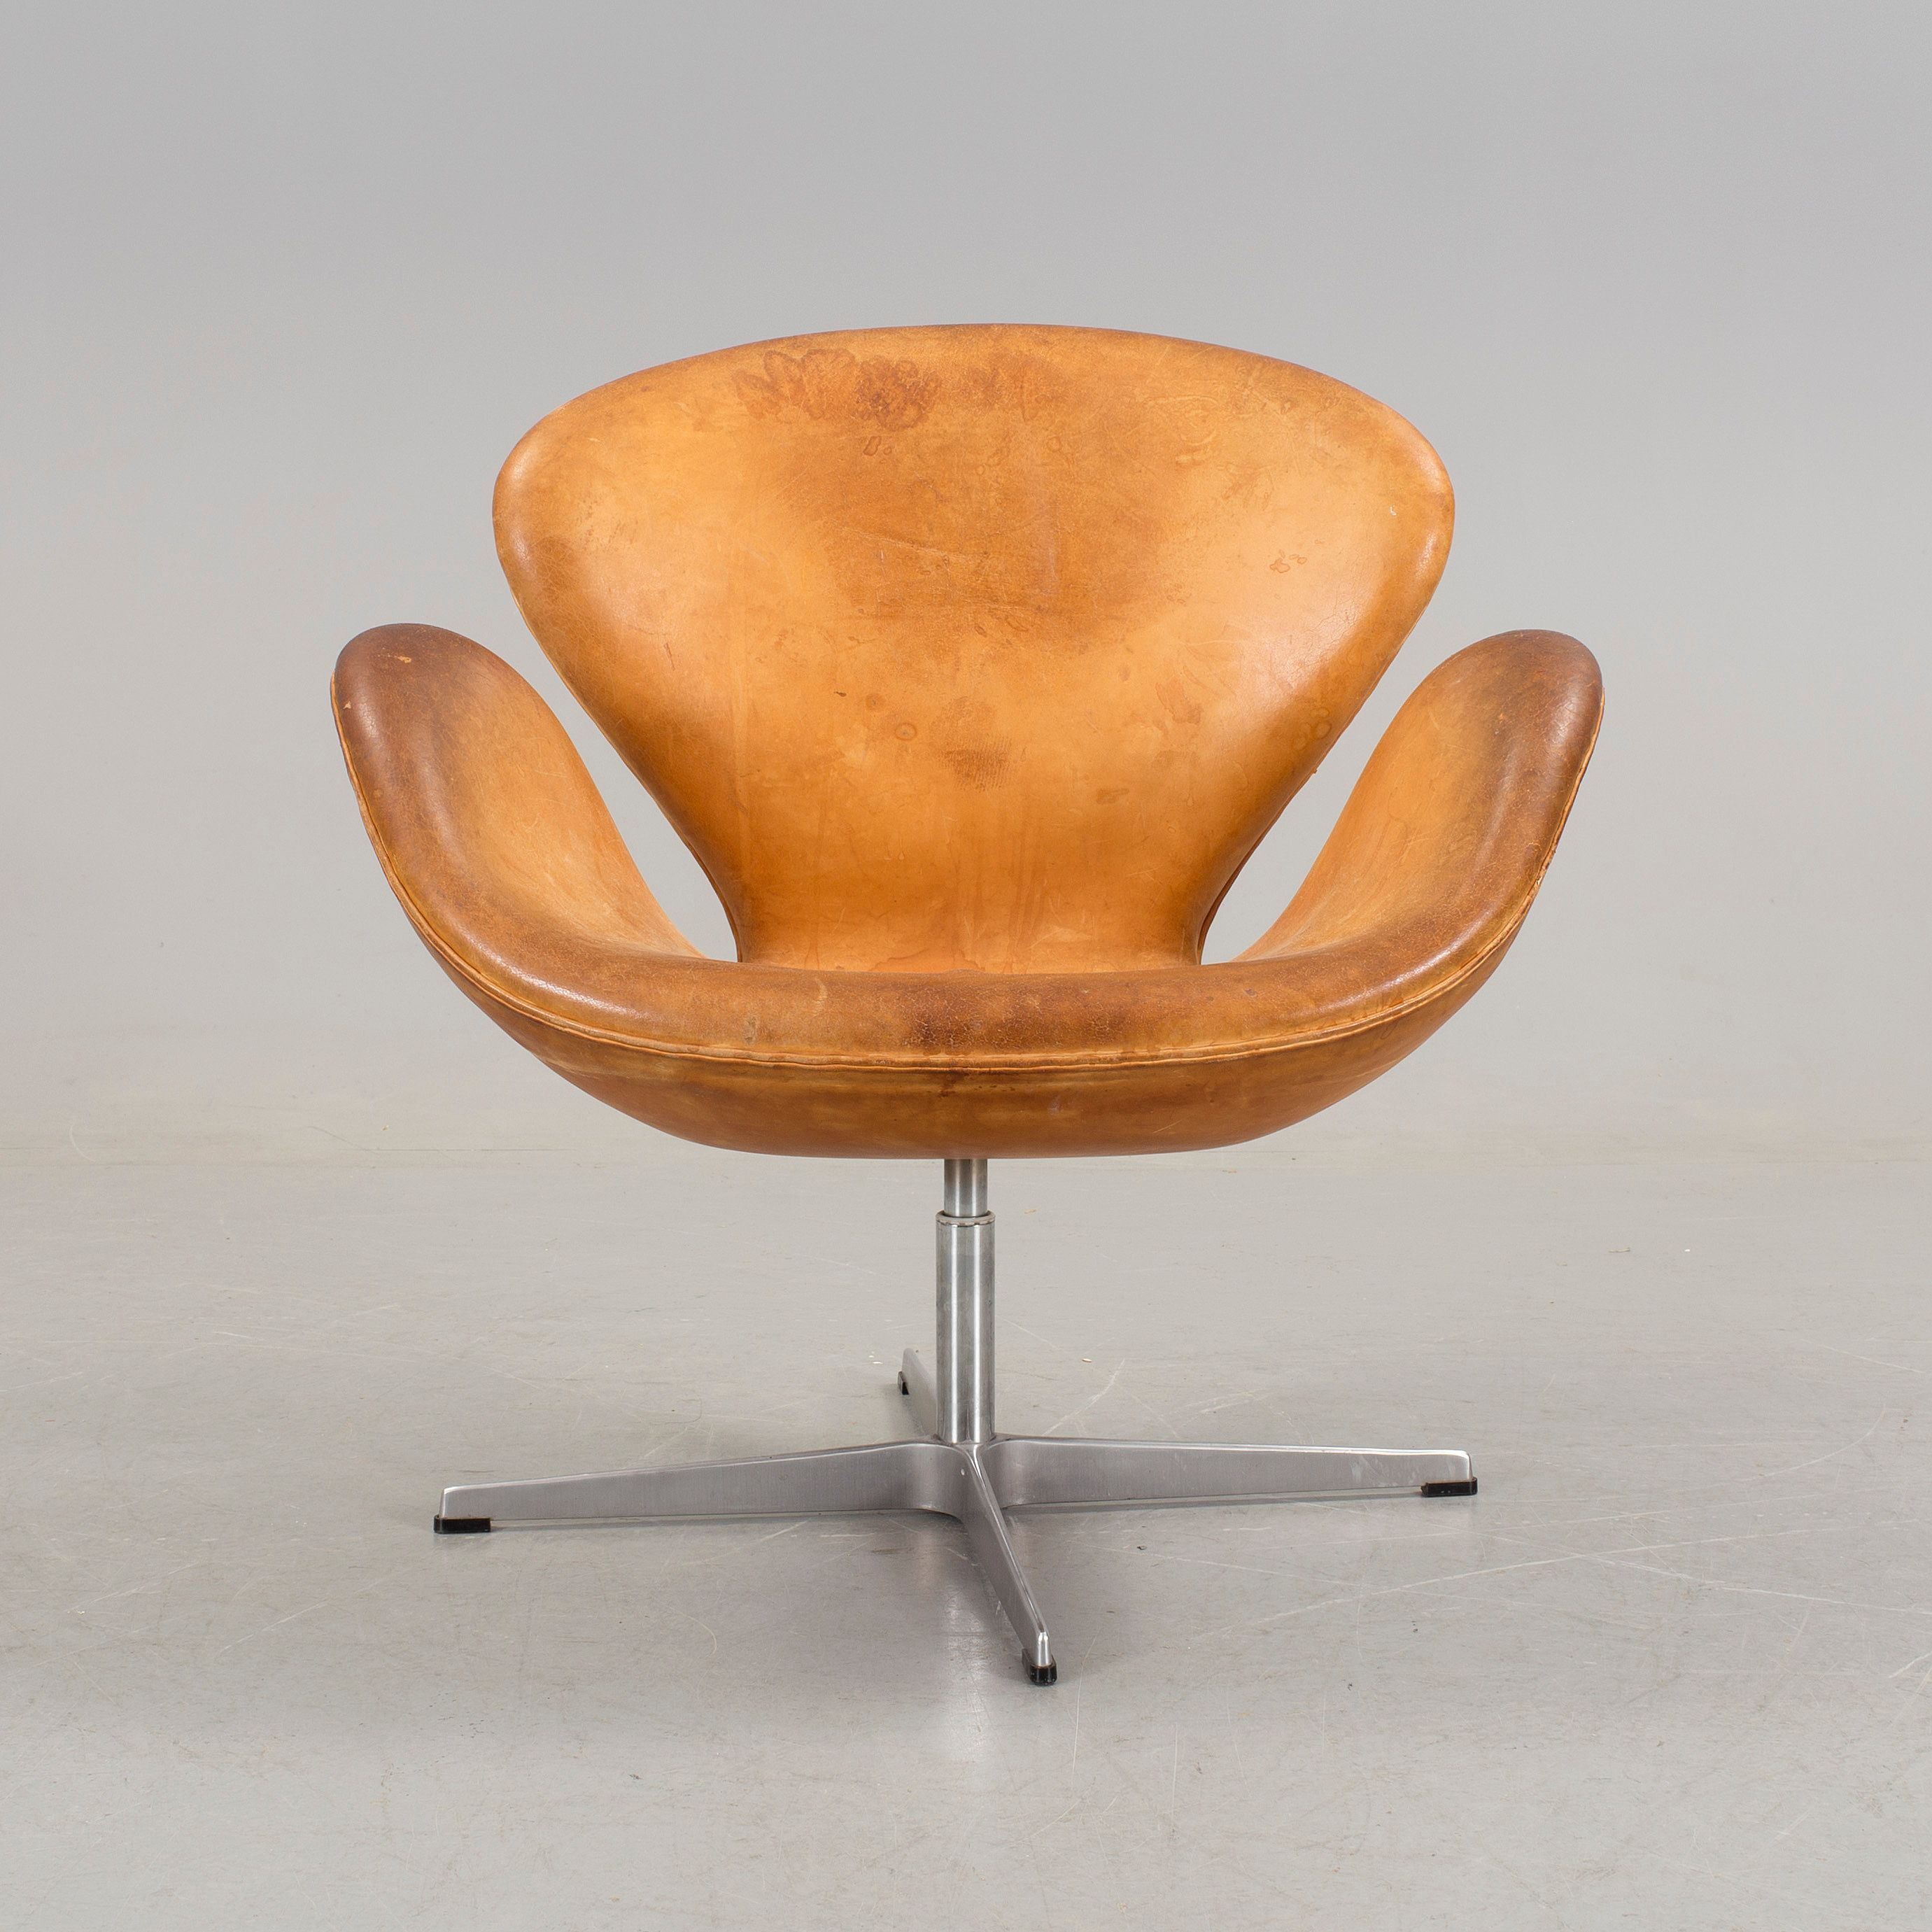 nuovo design come comprare uomo Arne Jacobsen swan chair | Industrial Design in 2019 | Arne ...